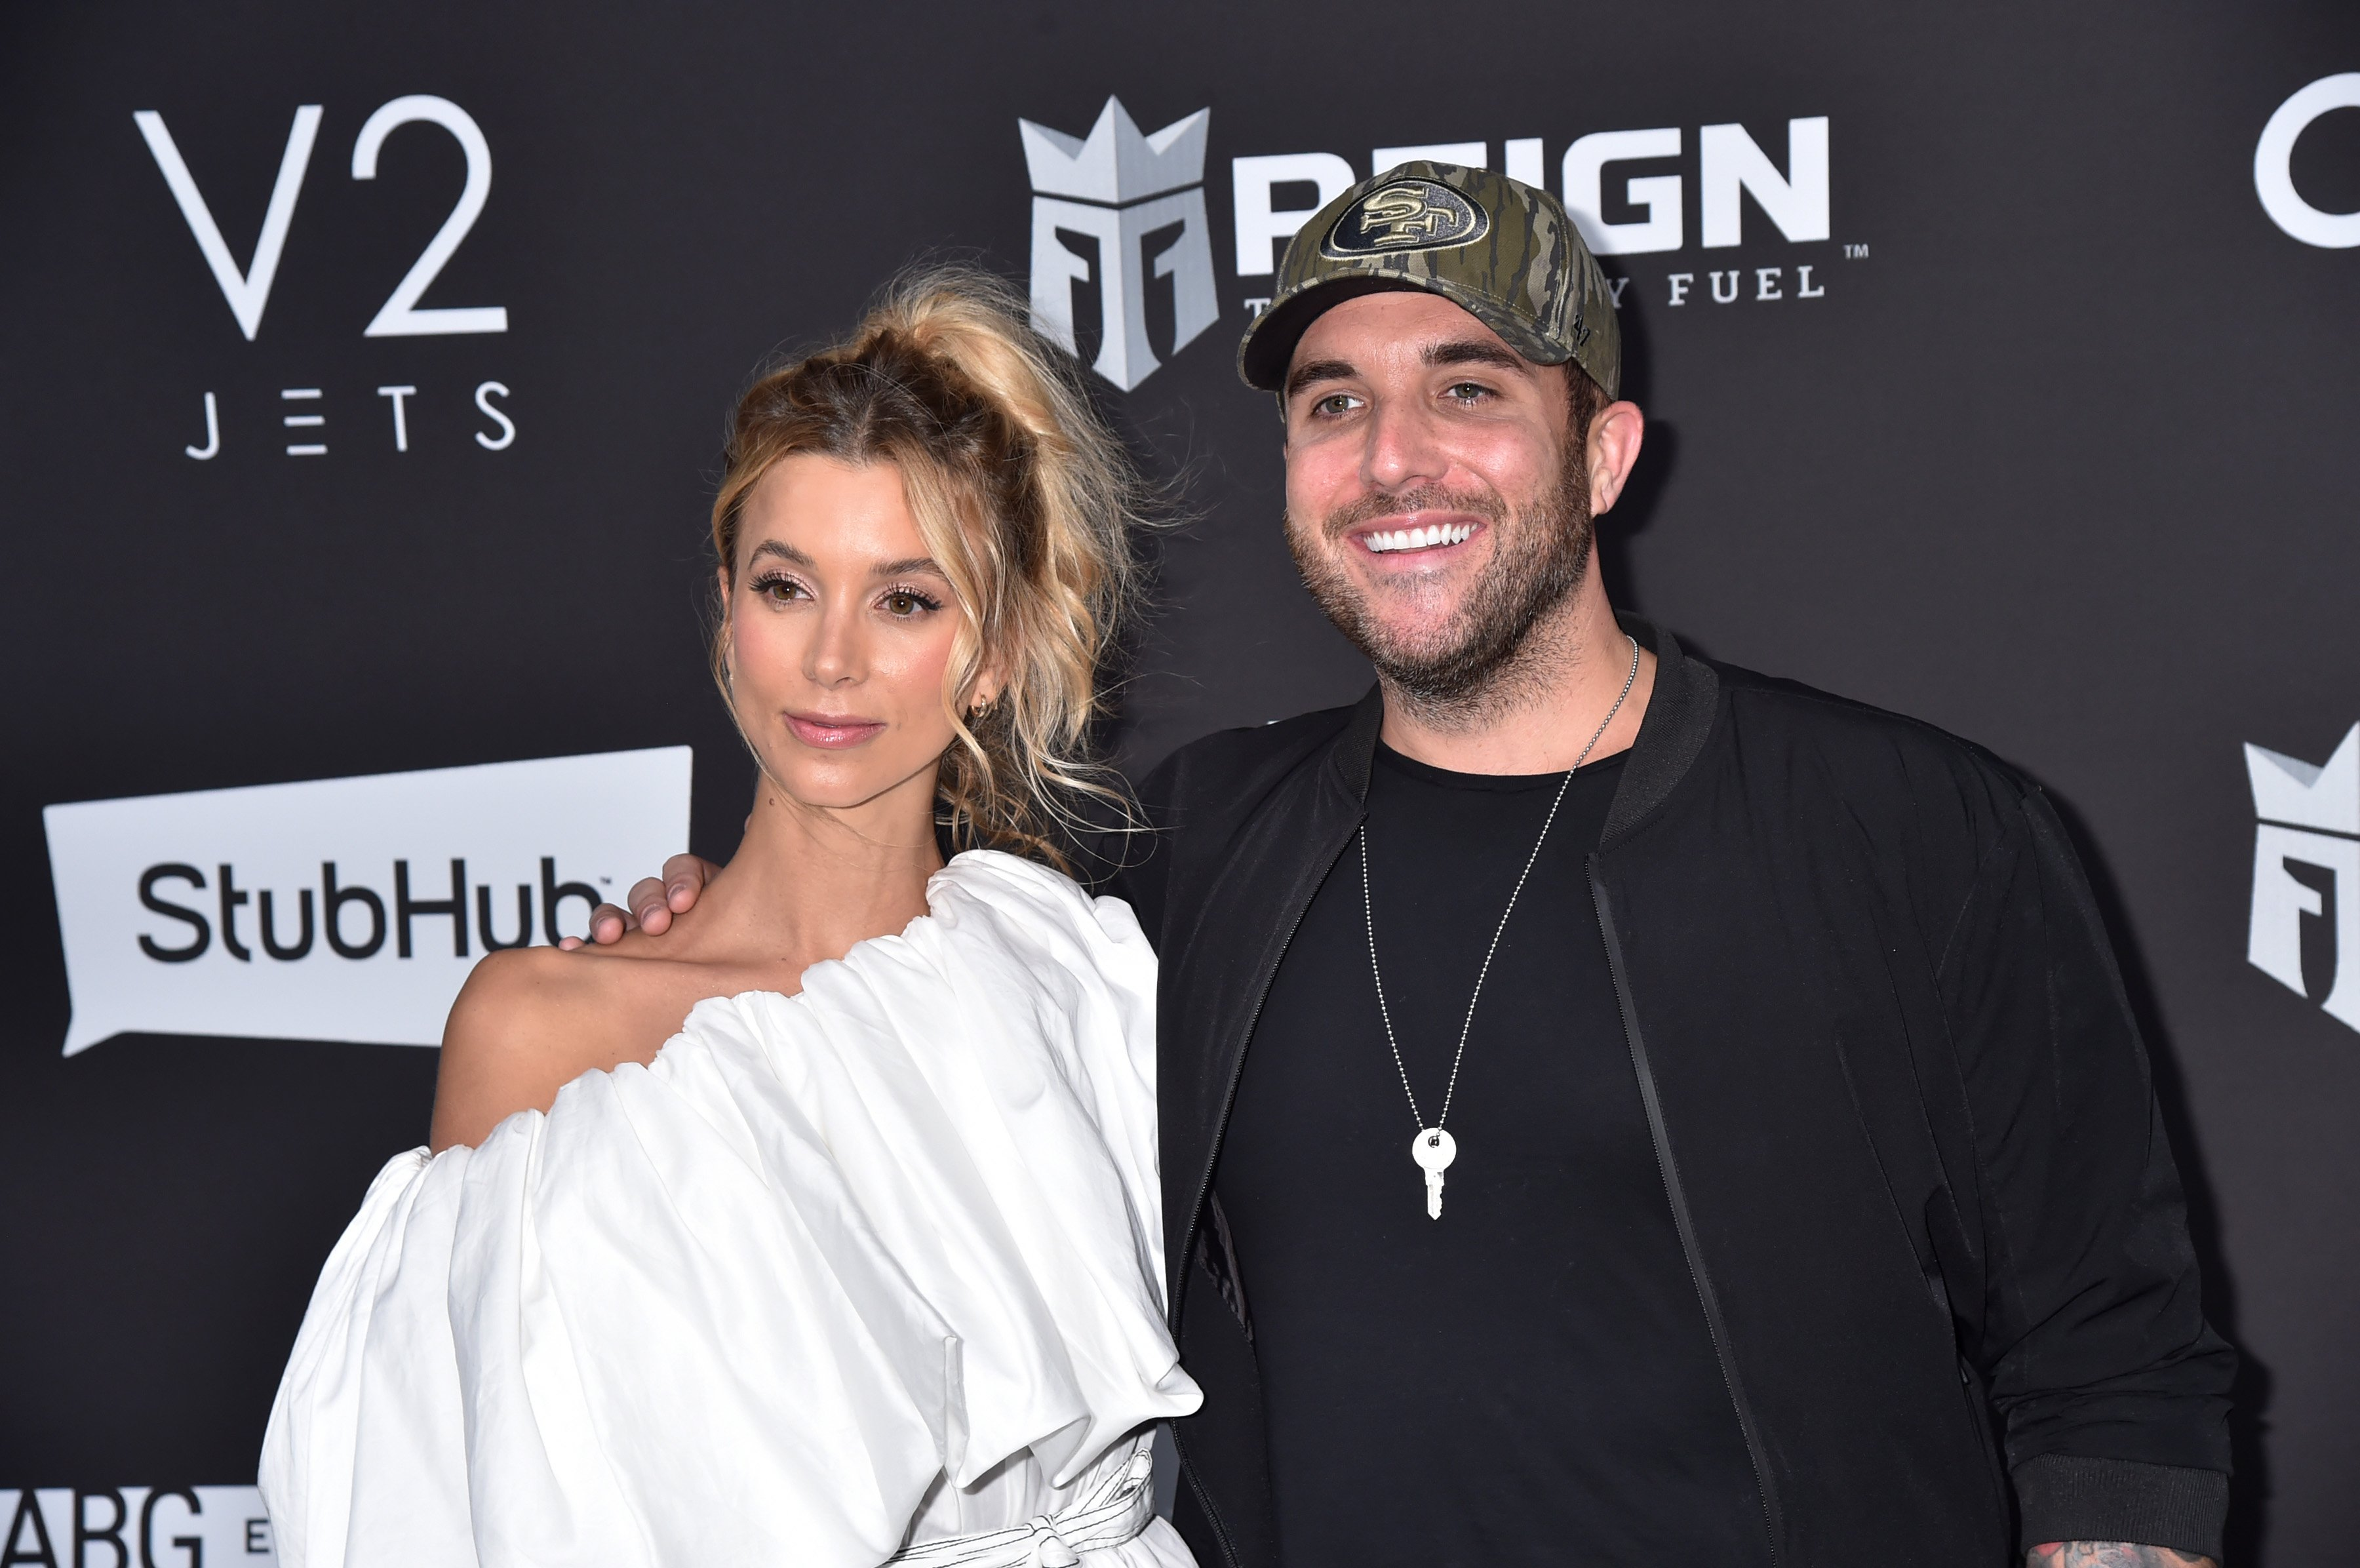 Sabina Gadecki and Tyler Rich attend Sports Illustrated at Fontainebleau Hotel on February 01, 2020 in Miami Beach, Florida   Photo: Getty Images